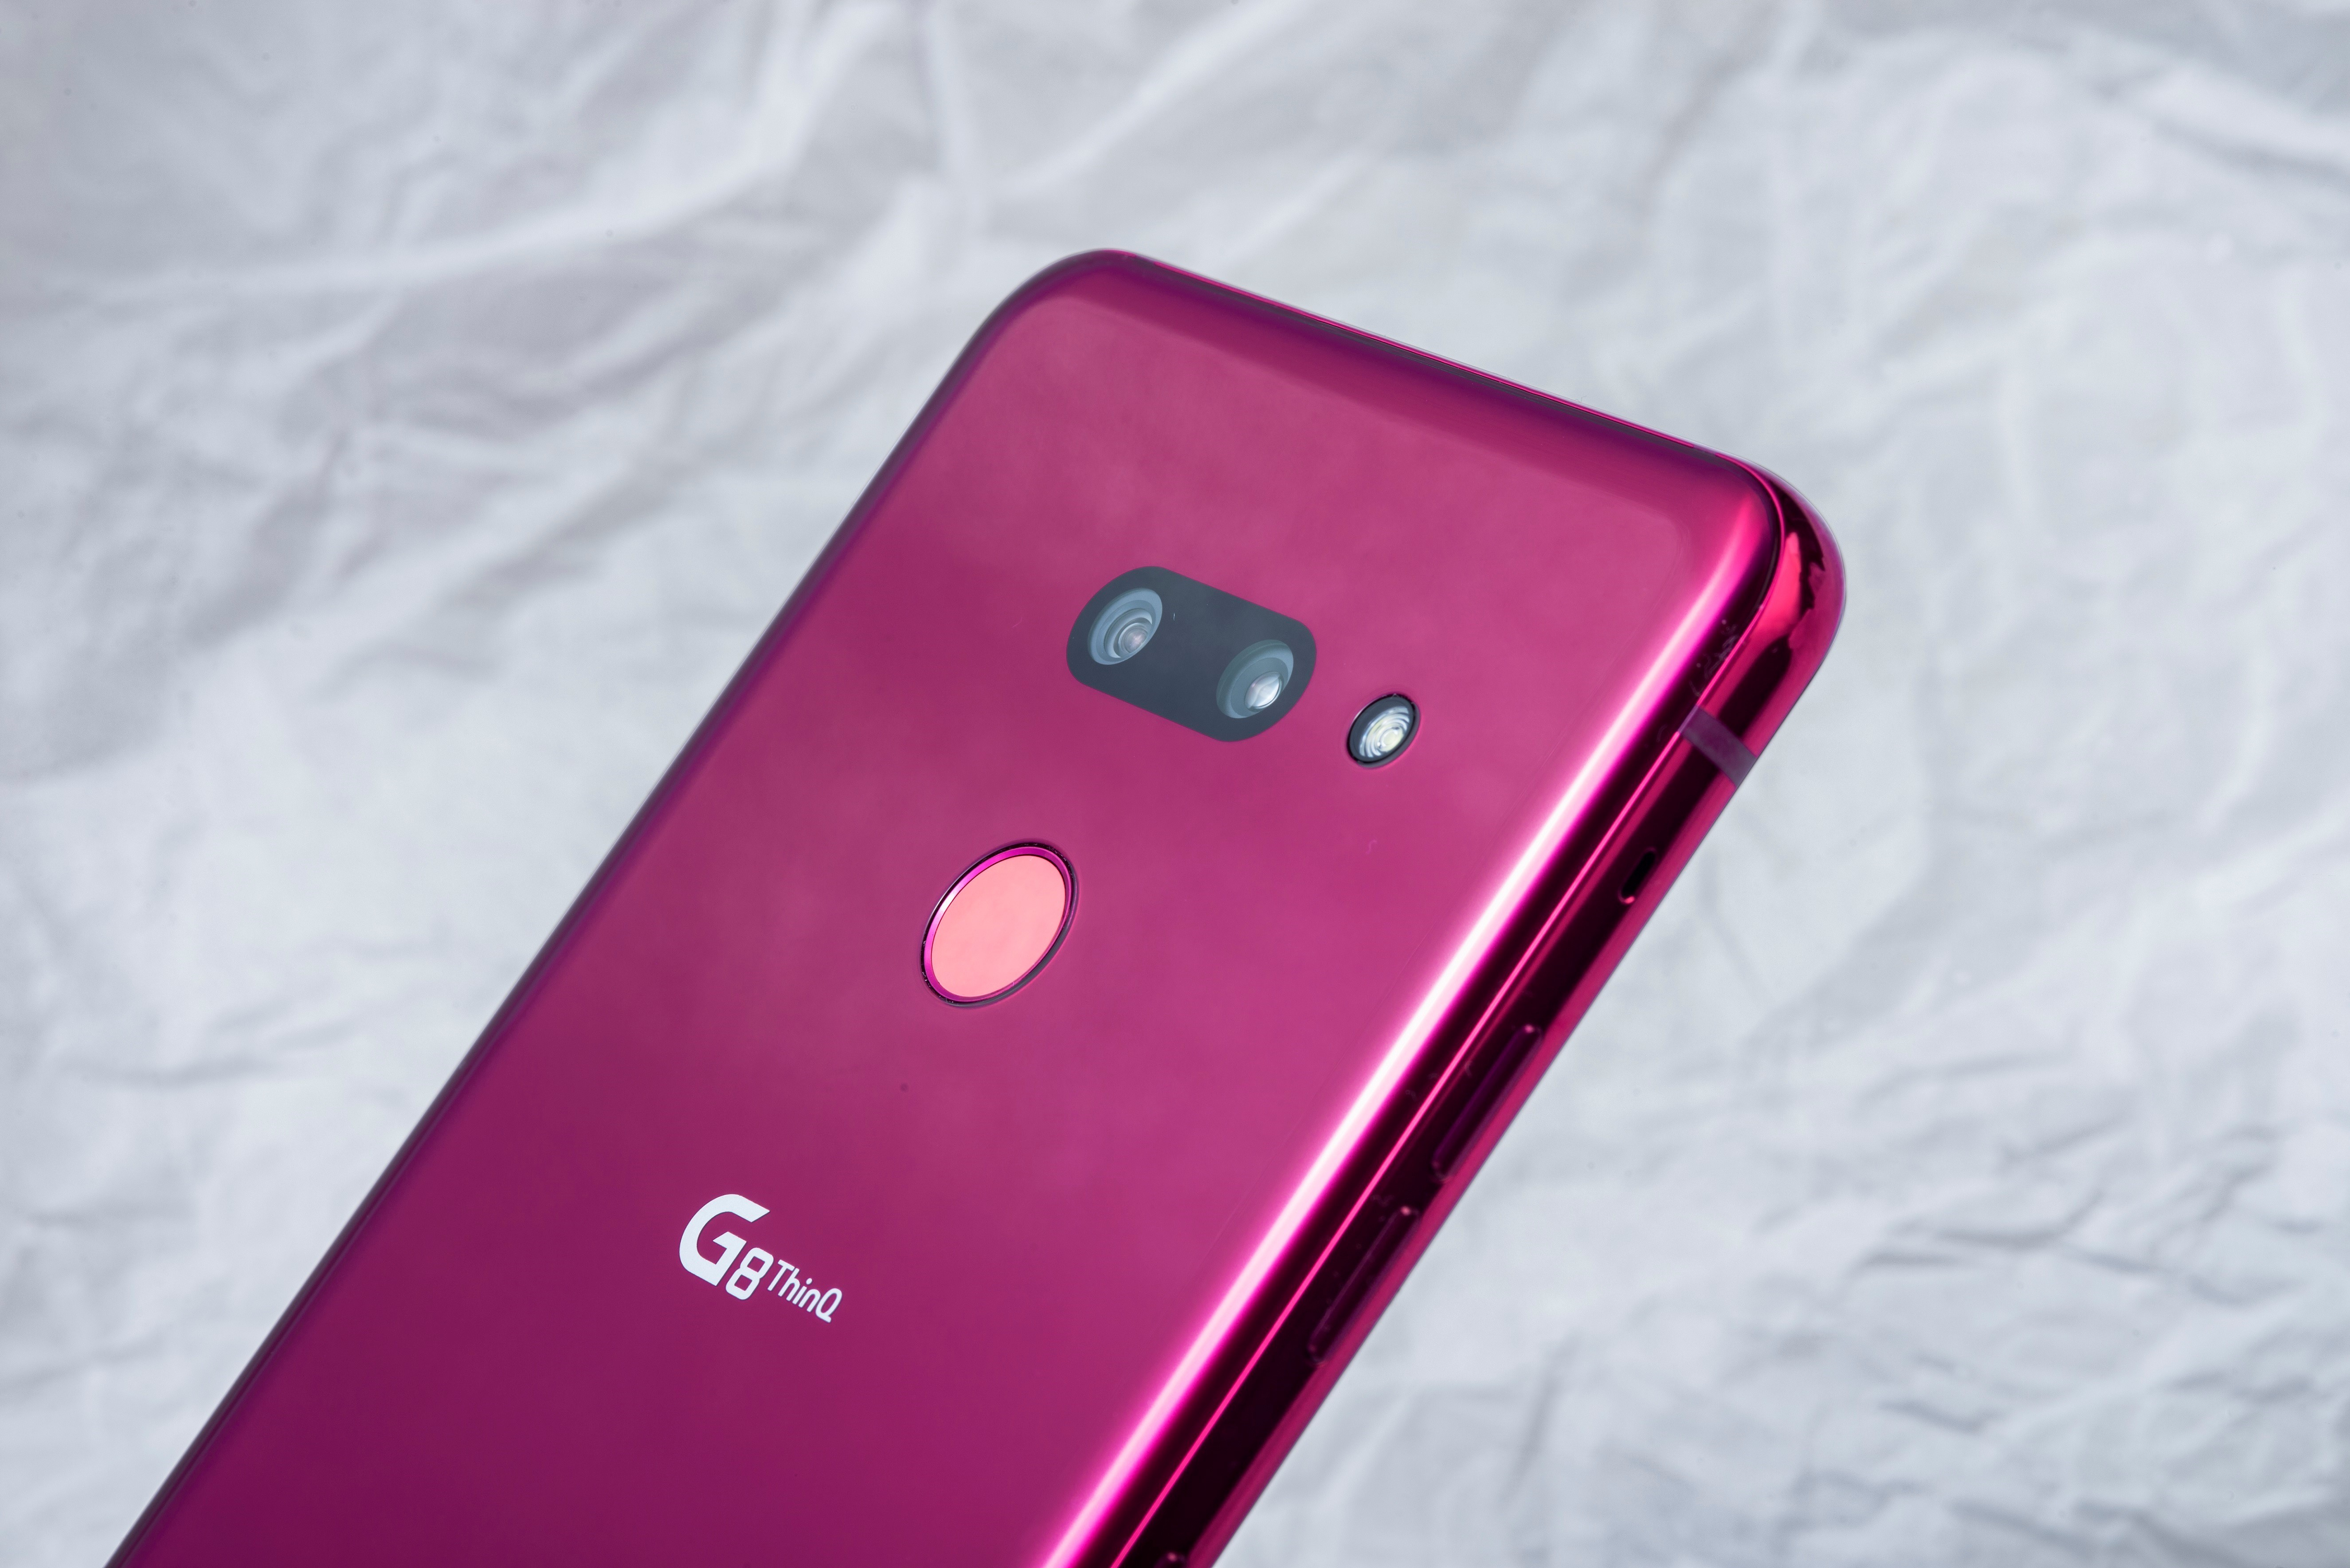 The rear side of LG G8 ThinQ